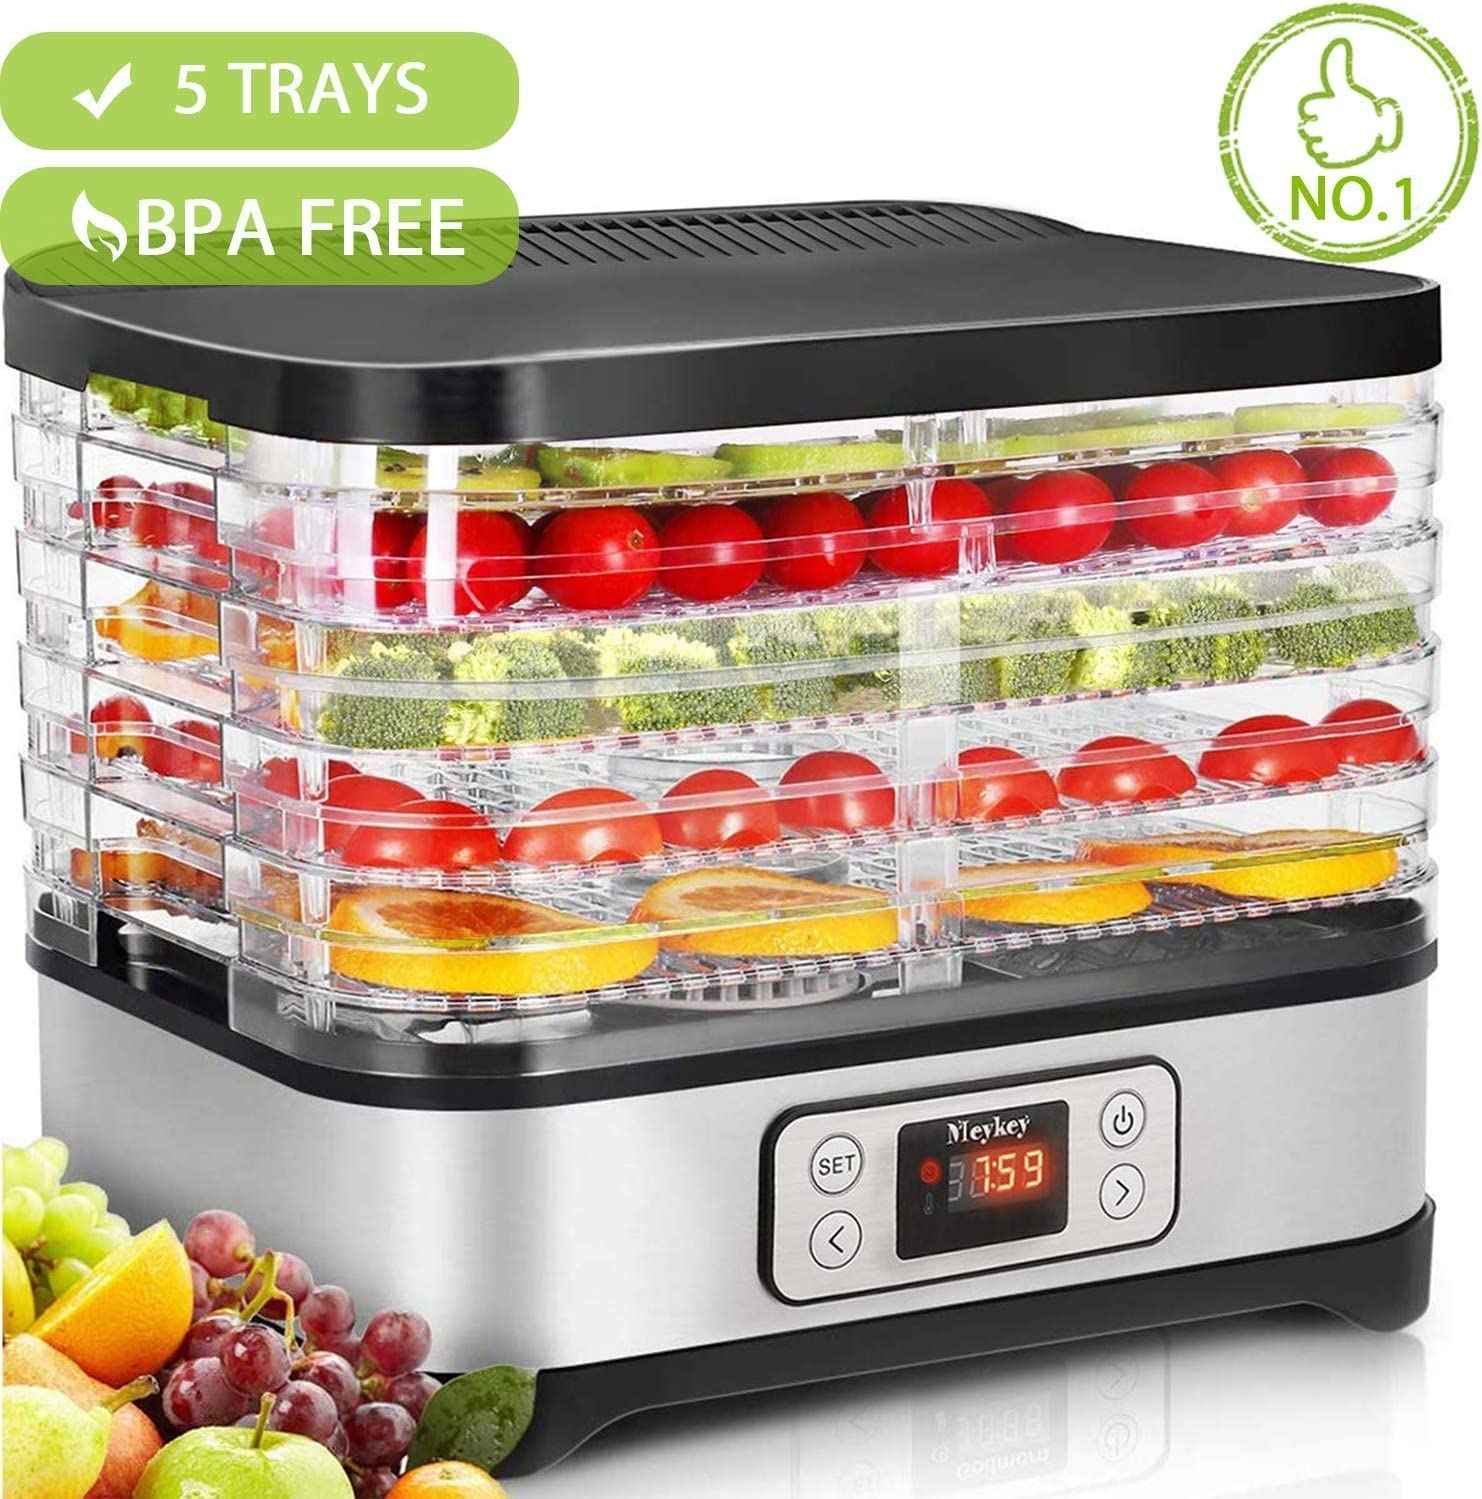 Food Dehydrator Machine by Electricity with timer 5 Trays LCD Display Screen BPA Free 250W